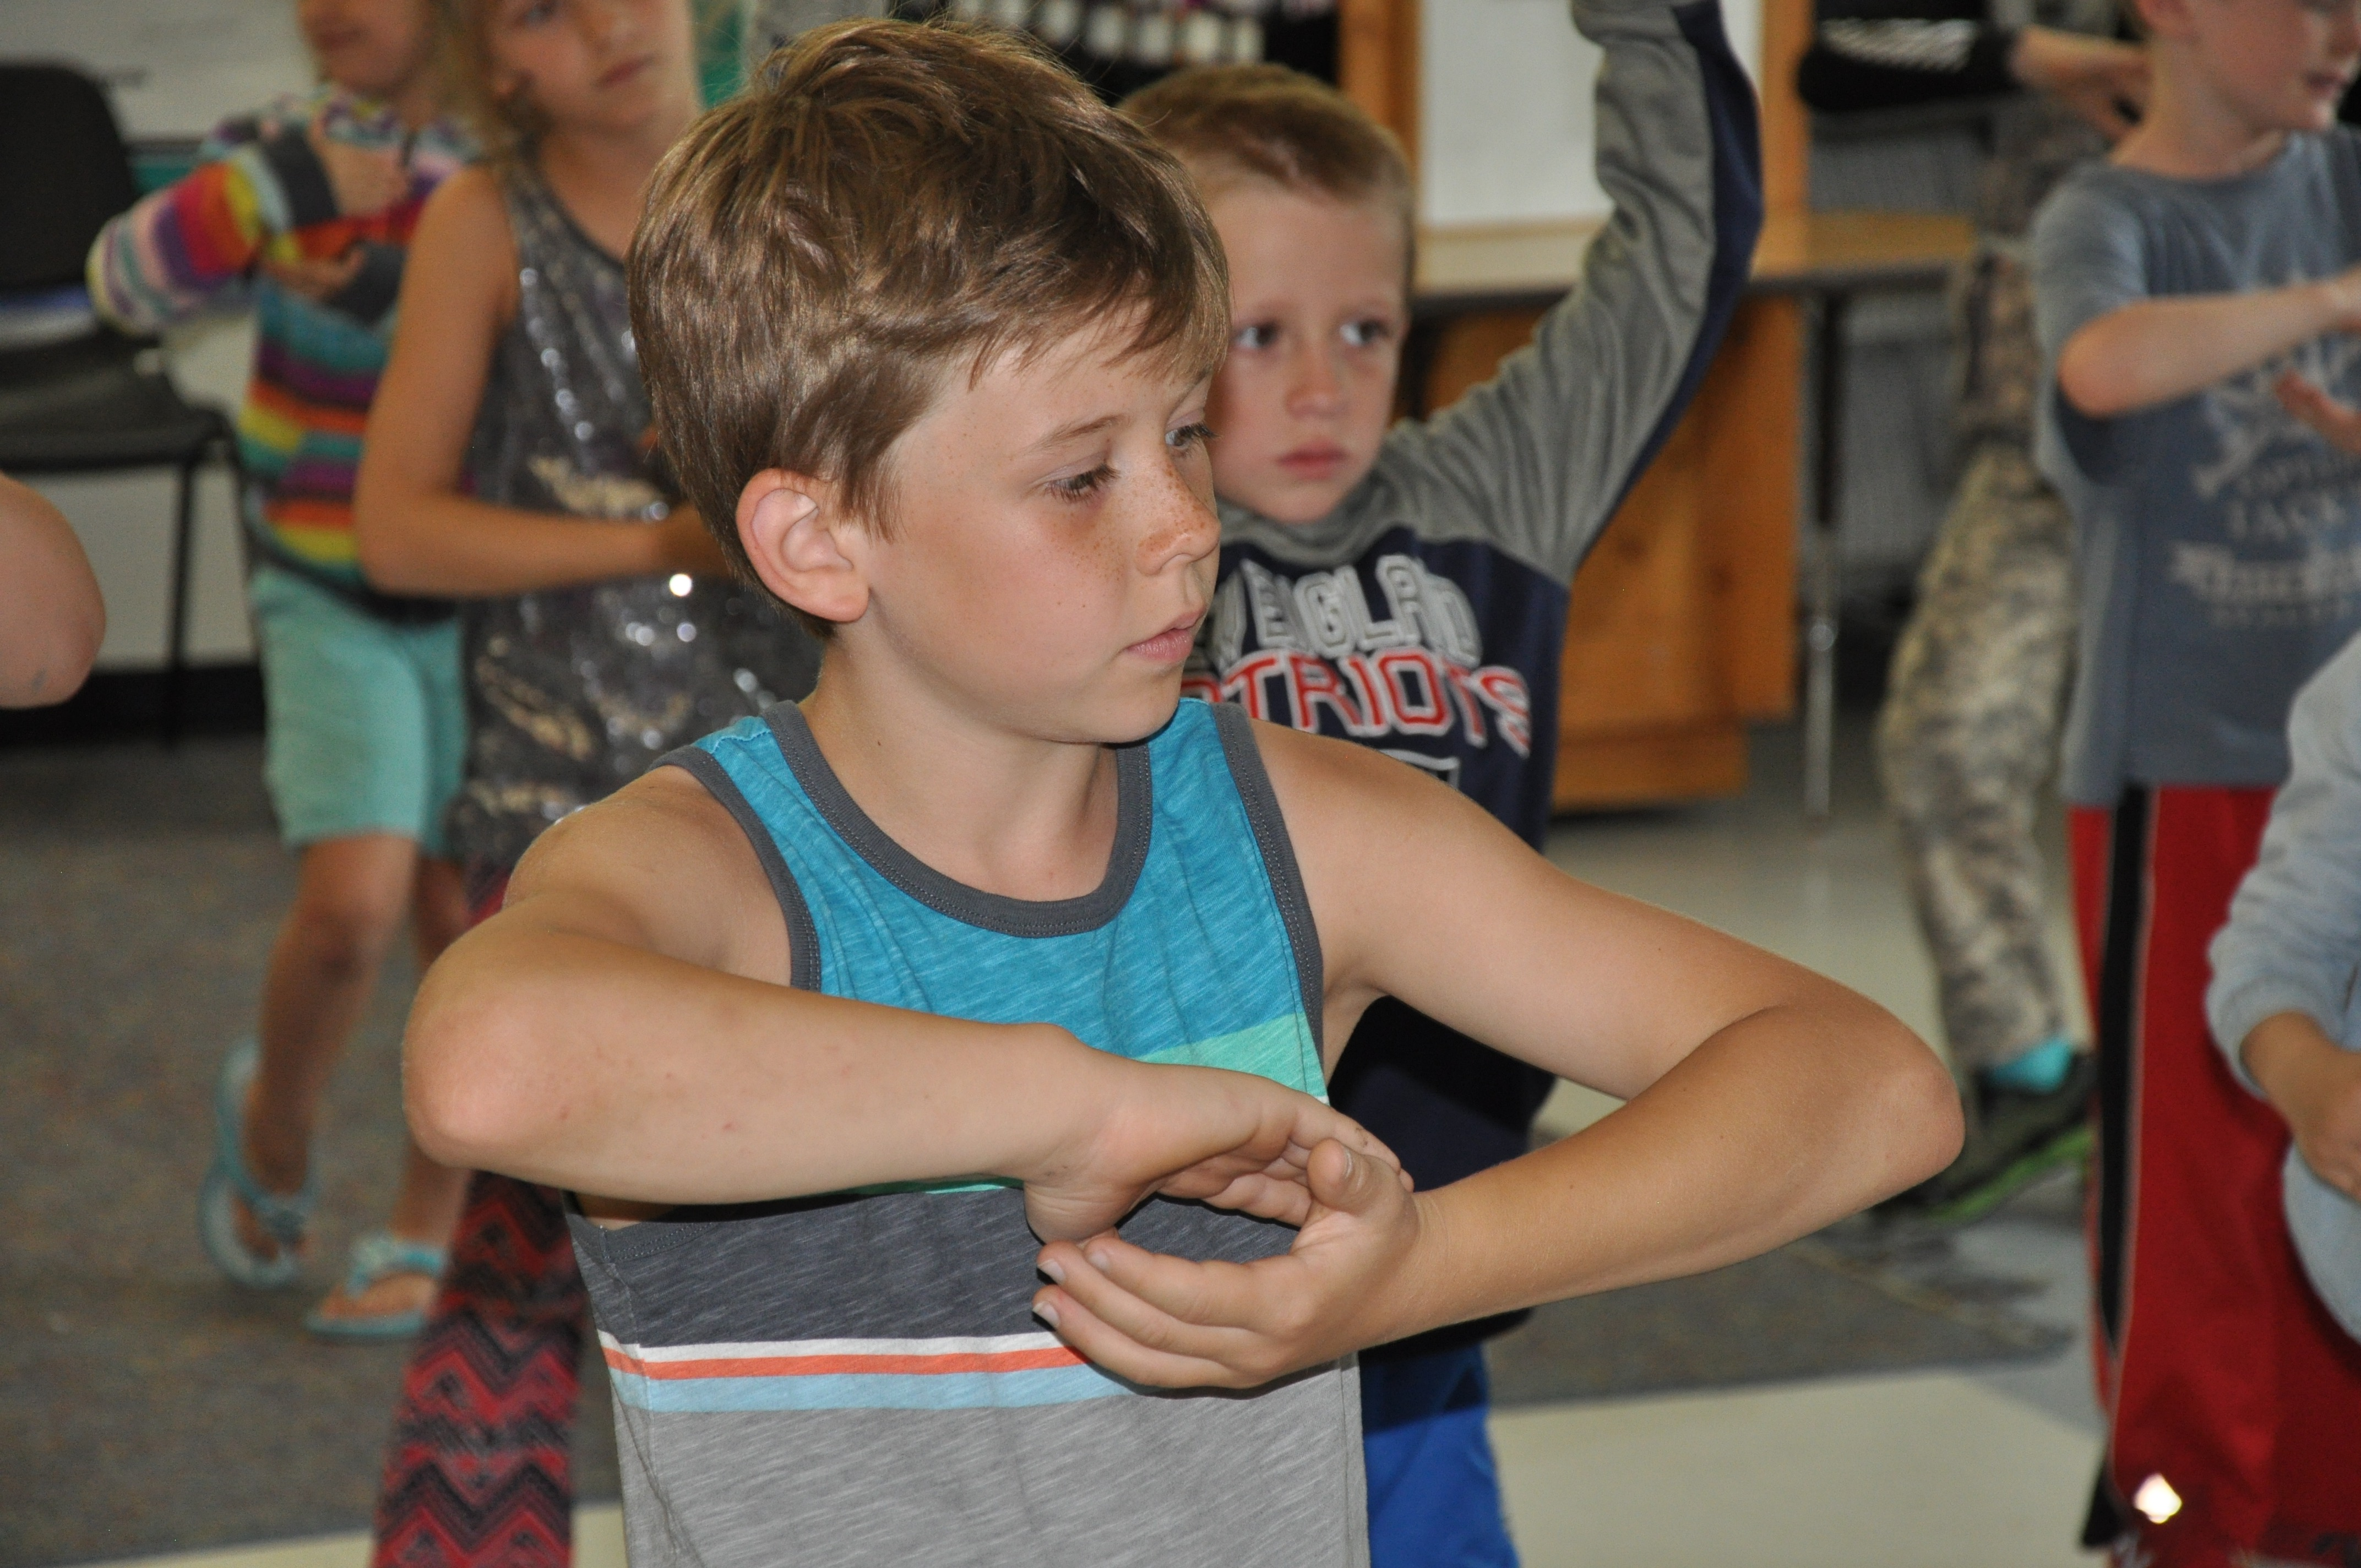 A Fletcher student practices Yoga as part of a classroom celebration of positive behavior.